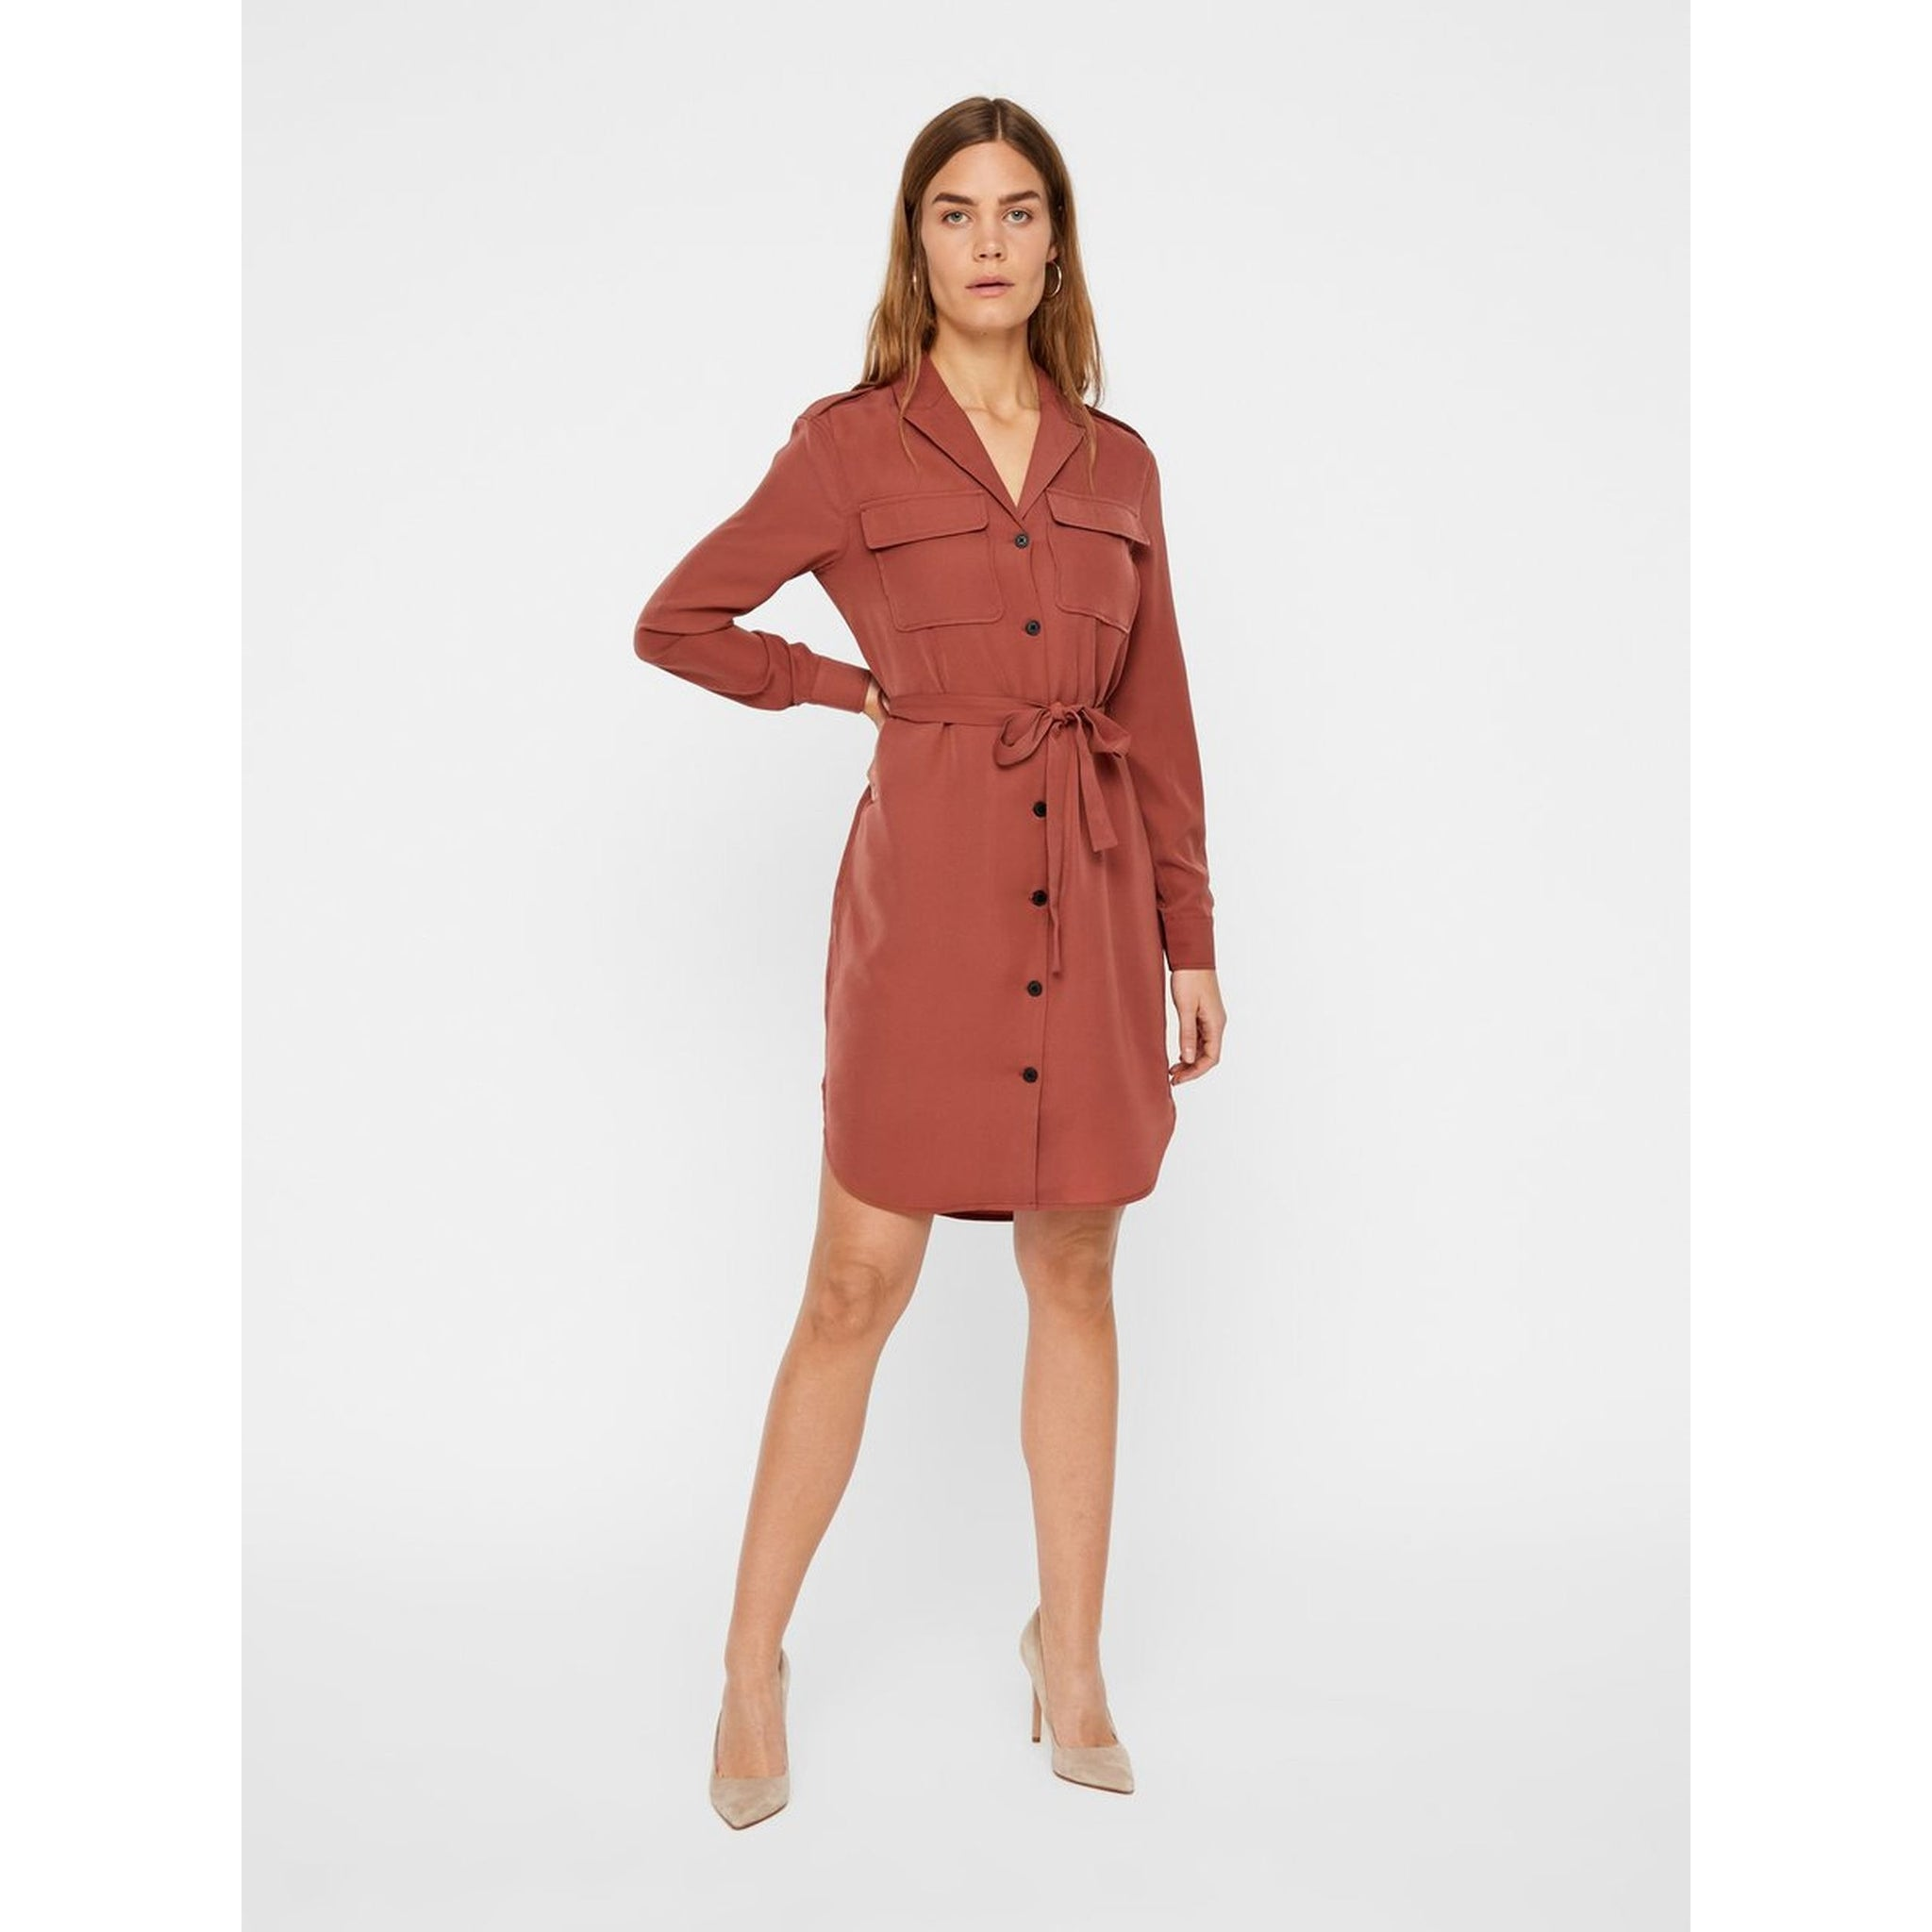 VERO MODA : Selina Long Sleeve Short Shirt Dress Cowhide